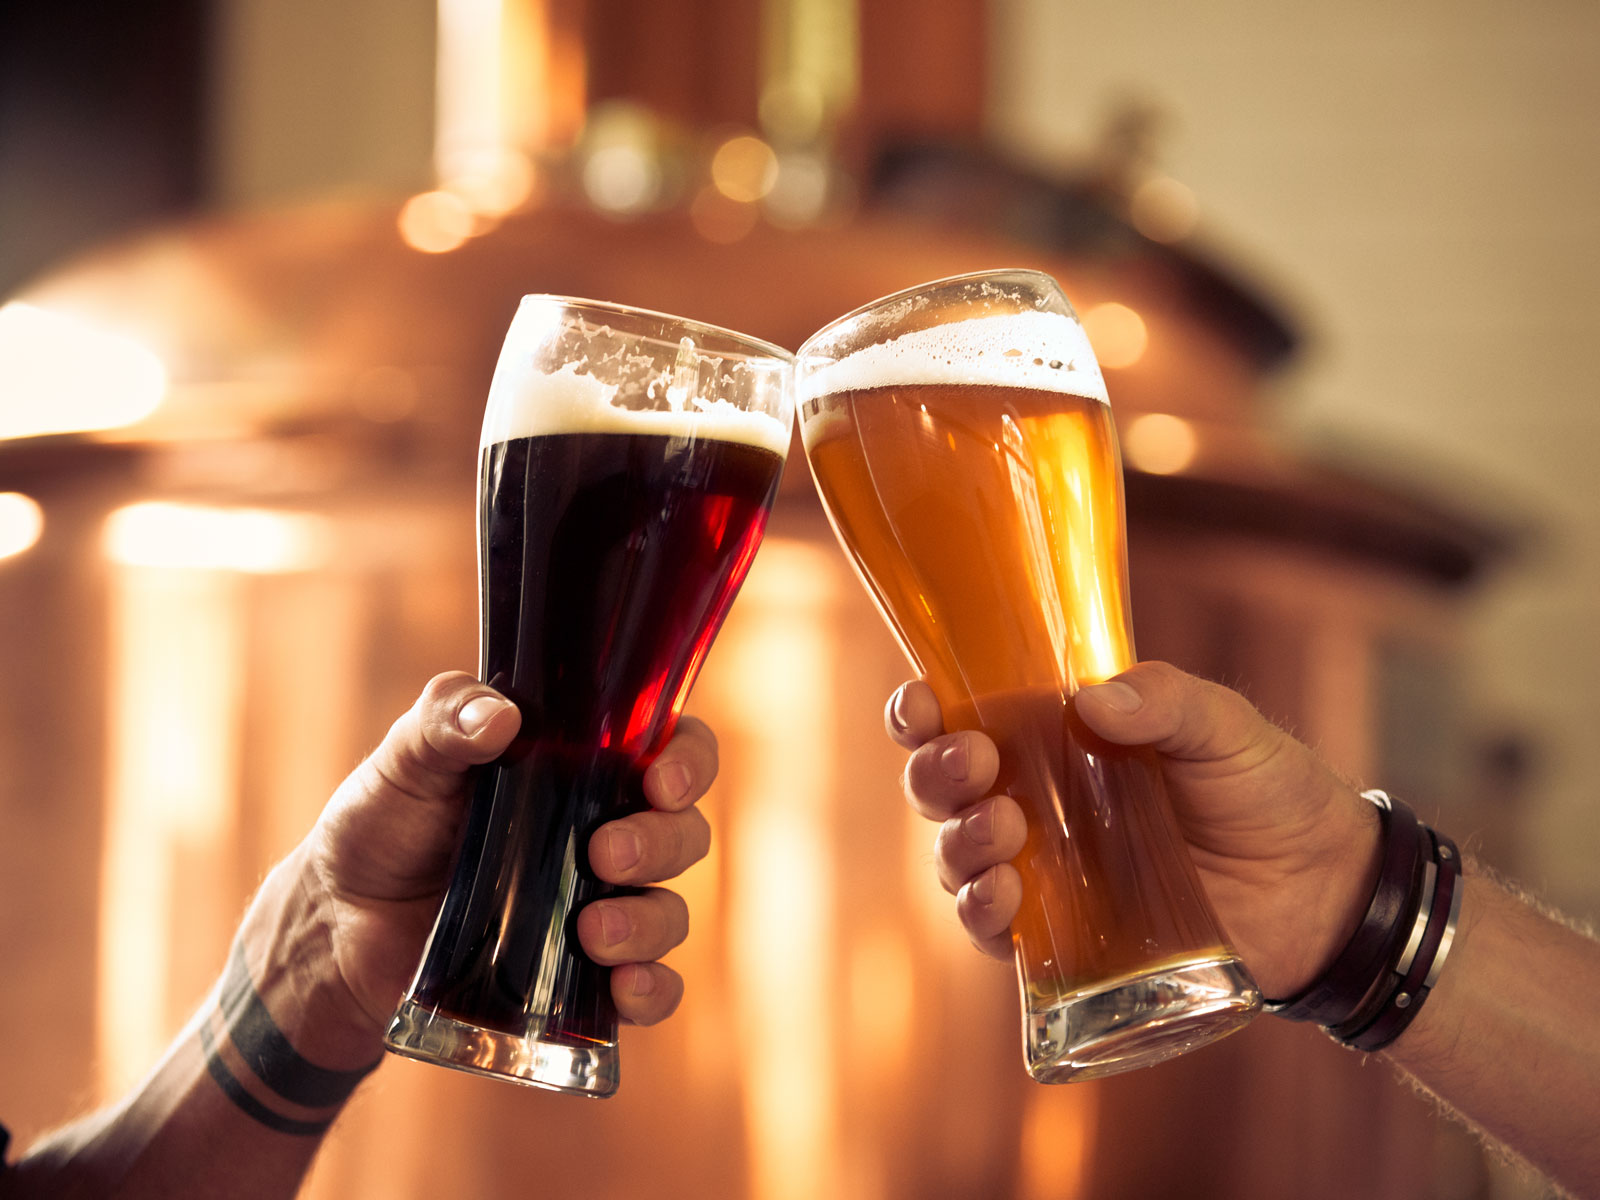 fastest-growing-breweries-FT-BLOG0319.jpg